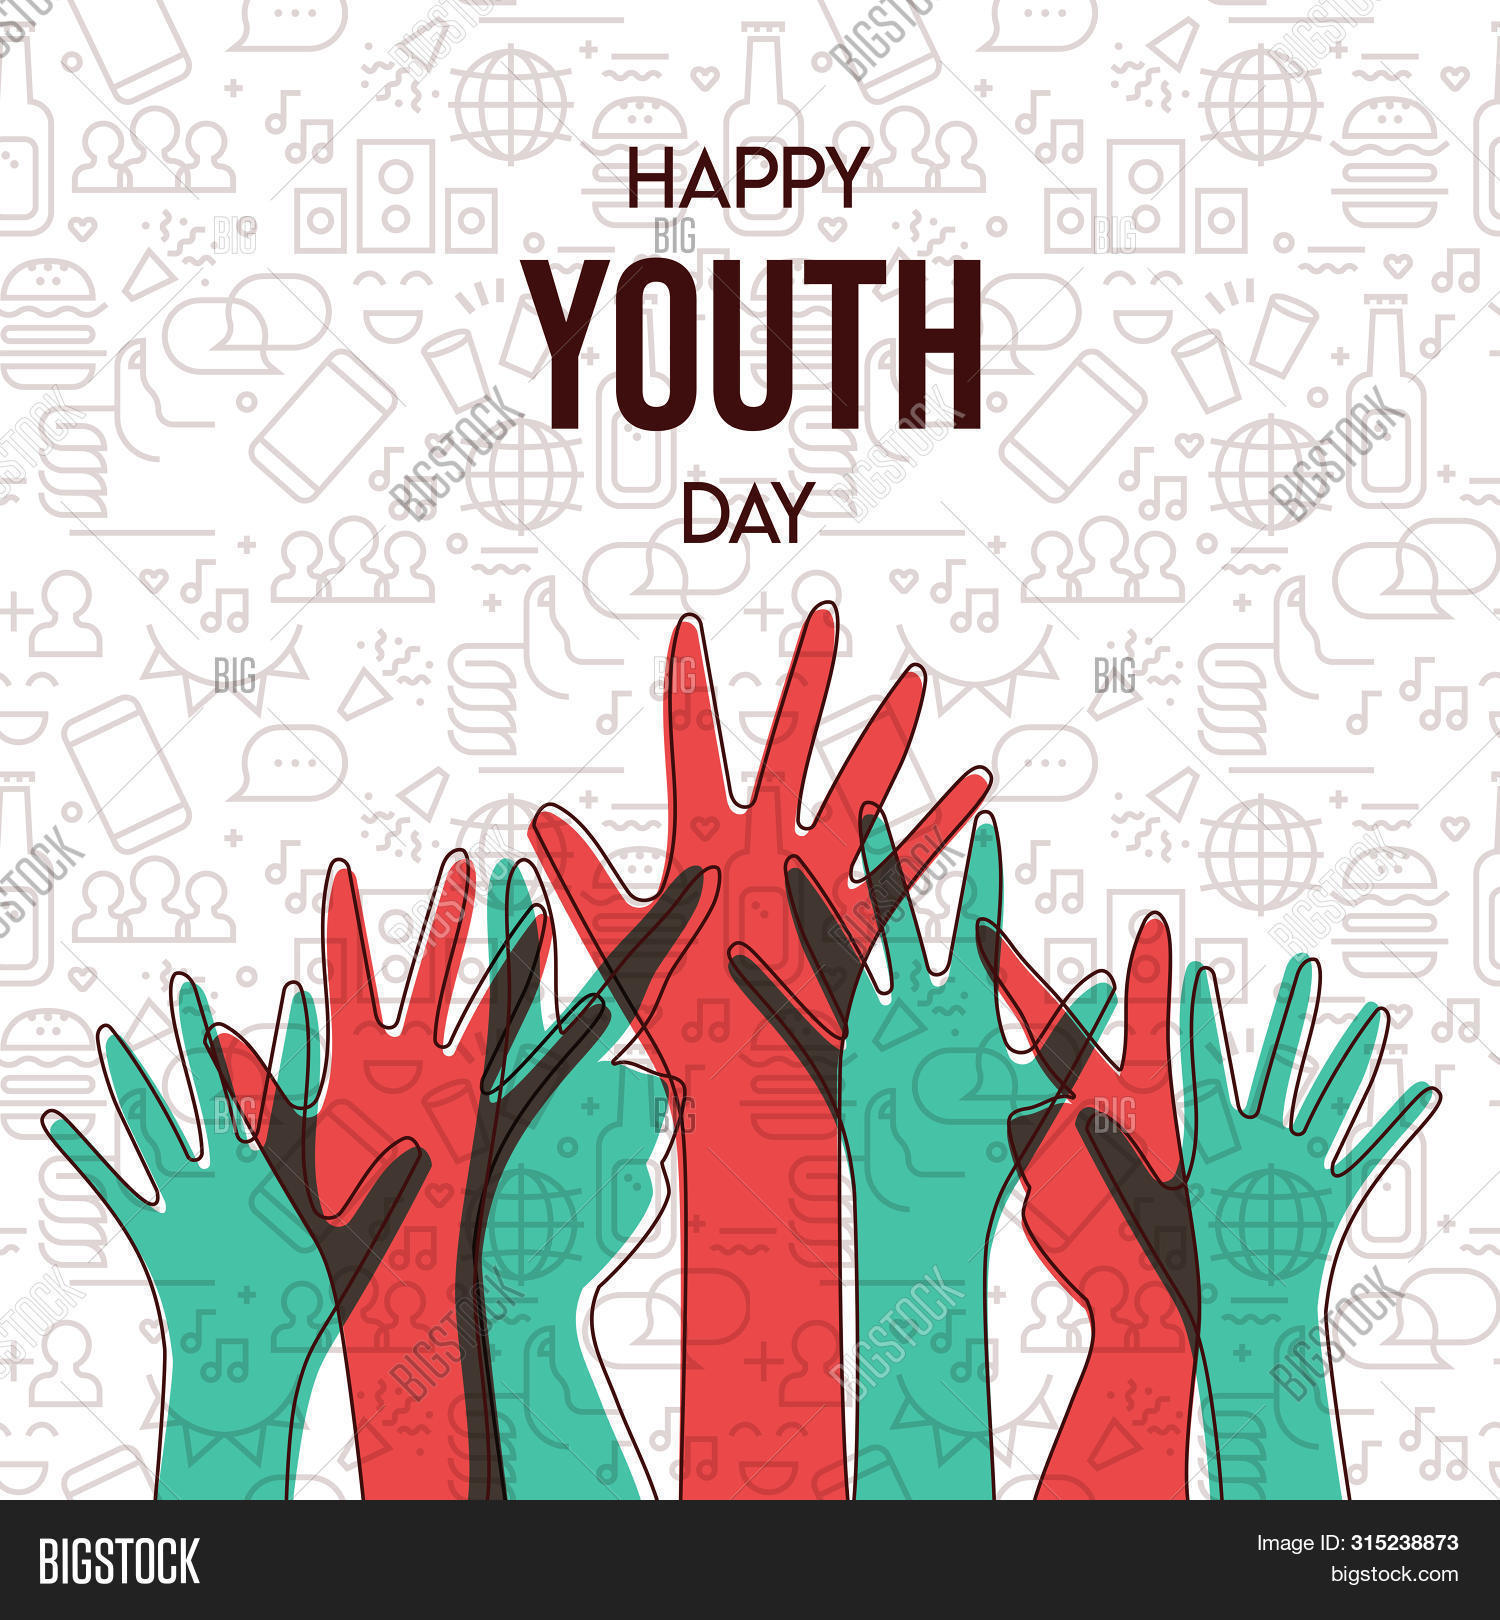 Happy Youth Day Vector Photo Free Trial Bigstock